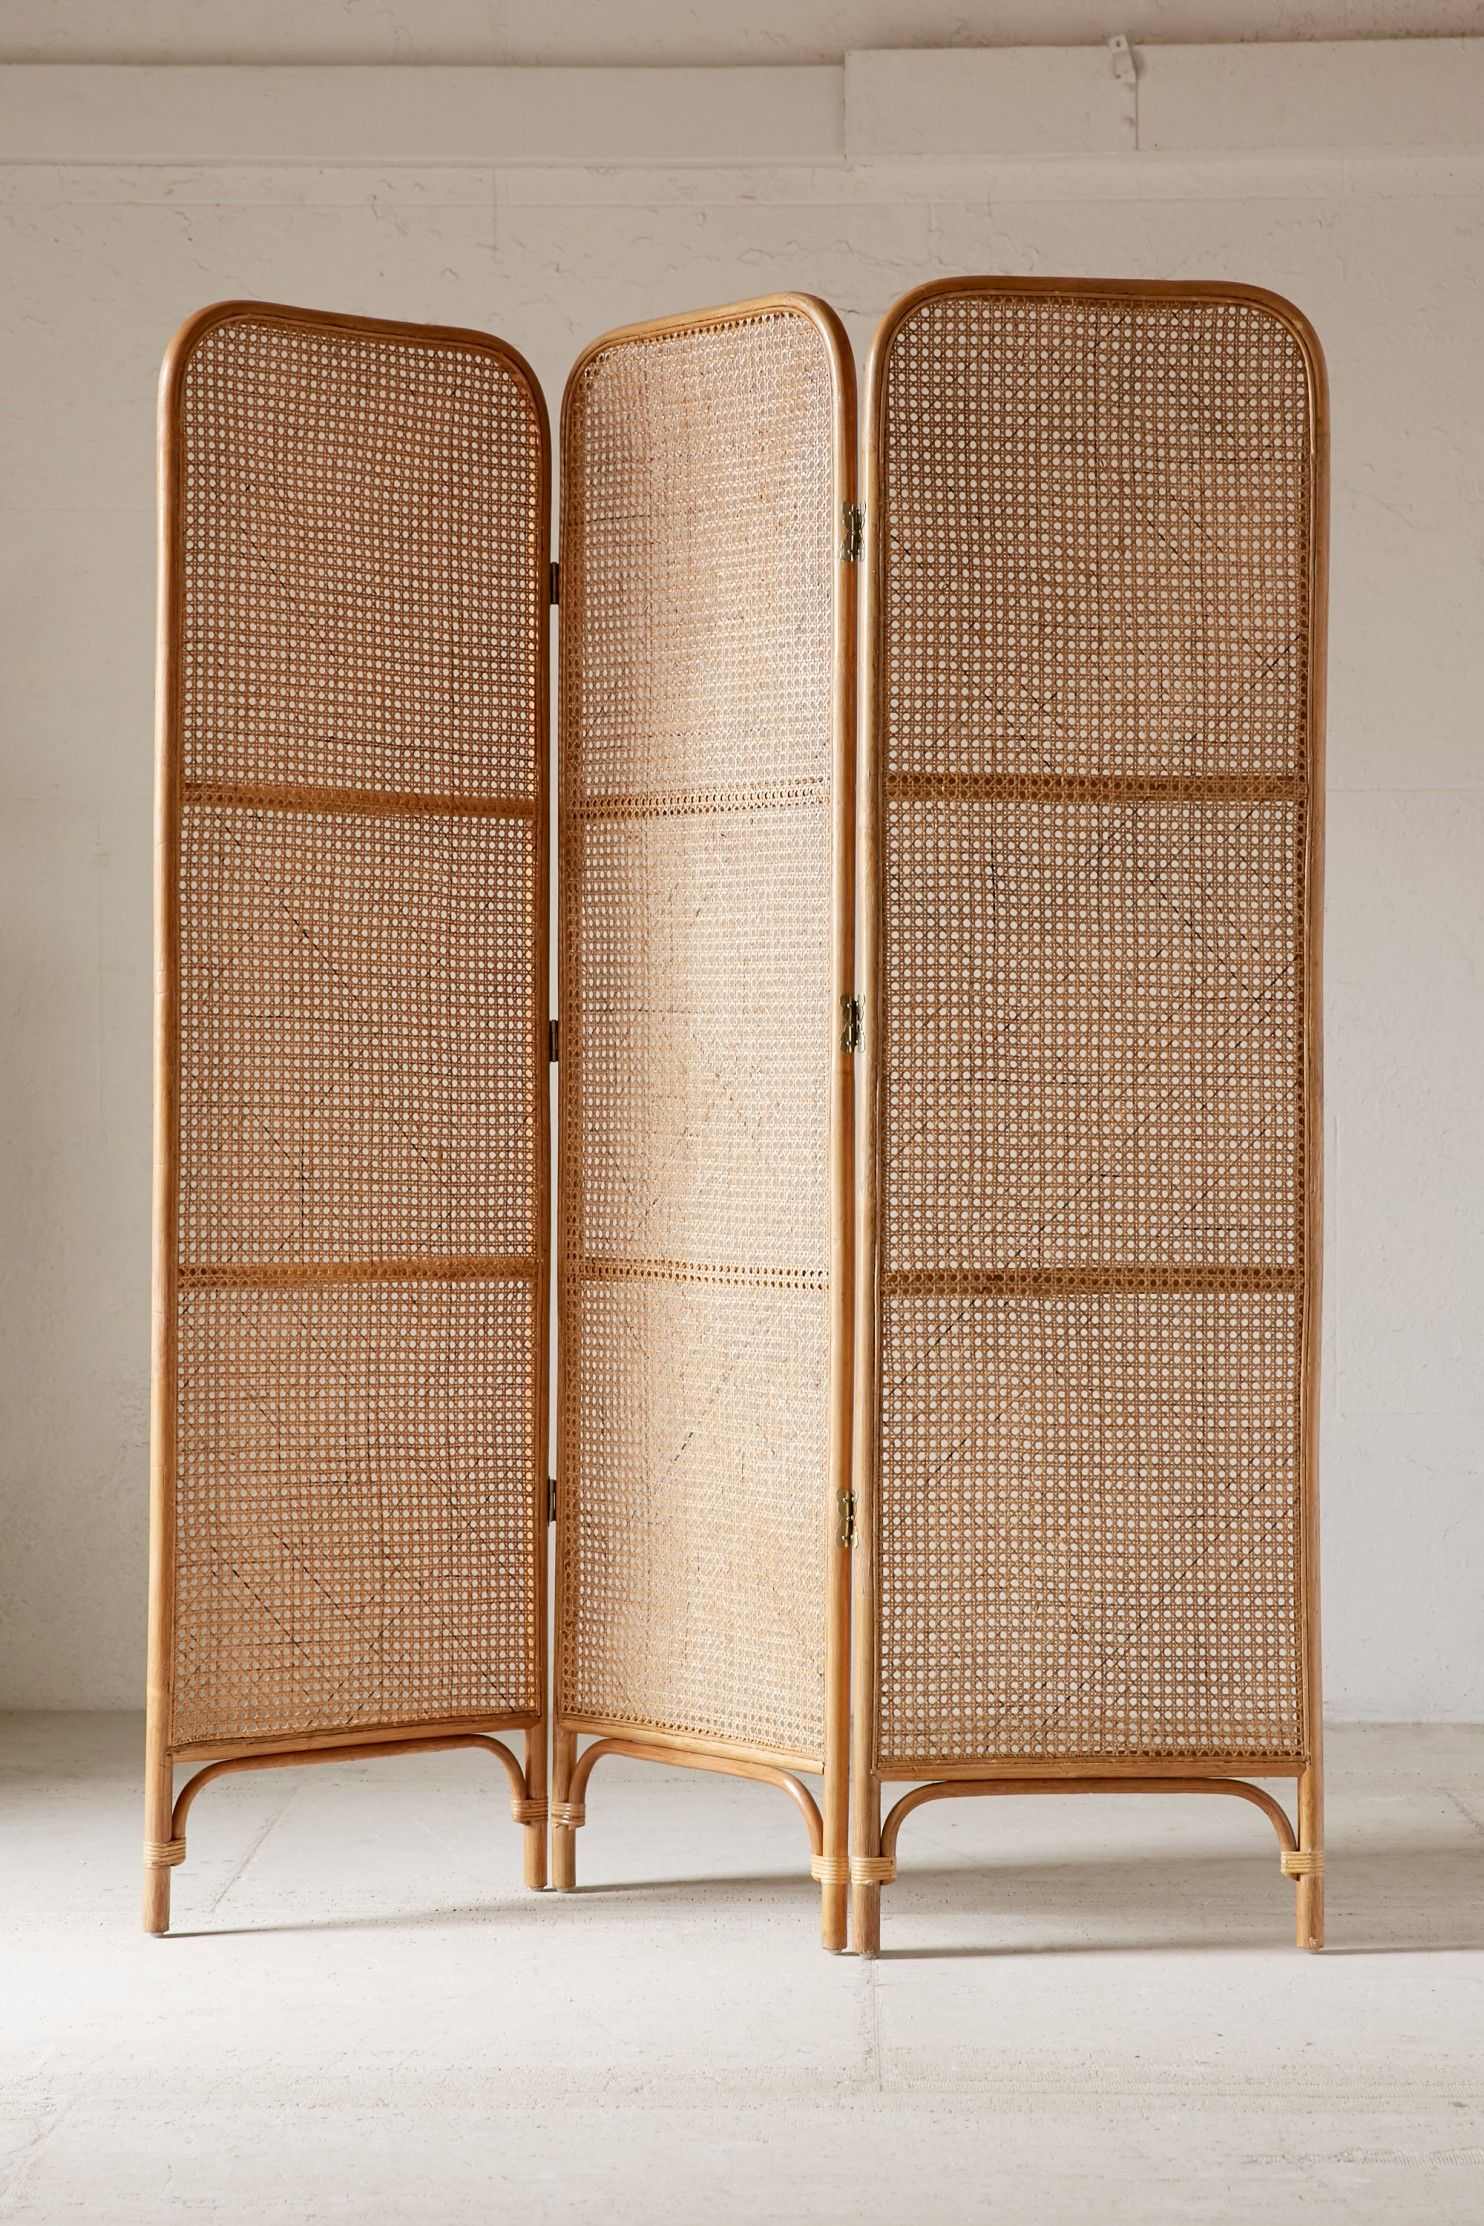 Natural fibers for a home thatus casually cool and collected in